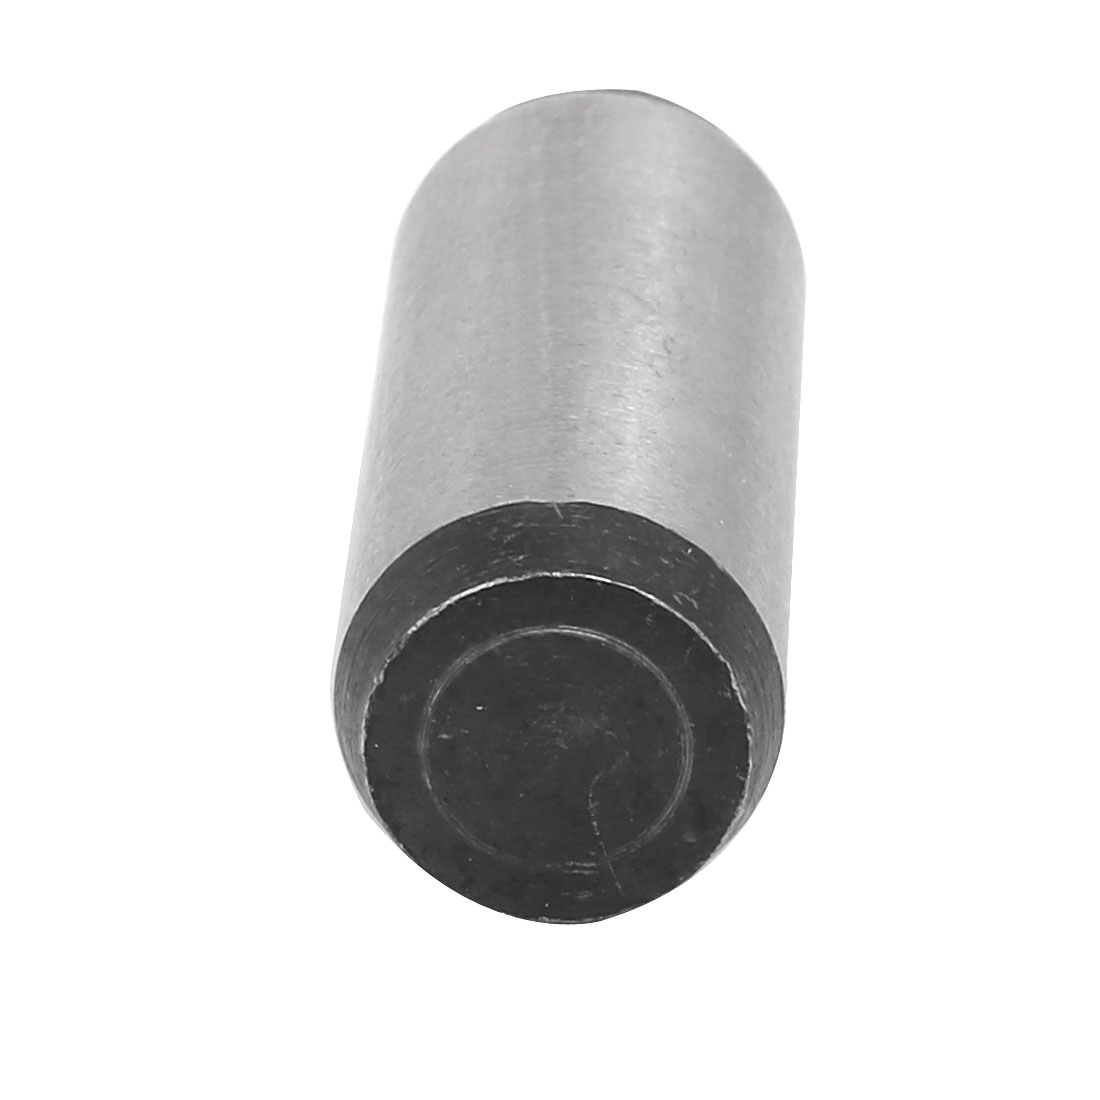 Carbon Steel GB117 45mm Length 16mm Small End Diameter Taper Pin 4pcs - image 2 of 4